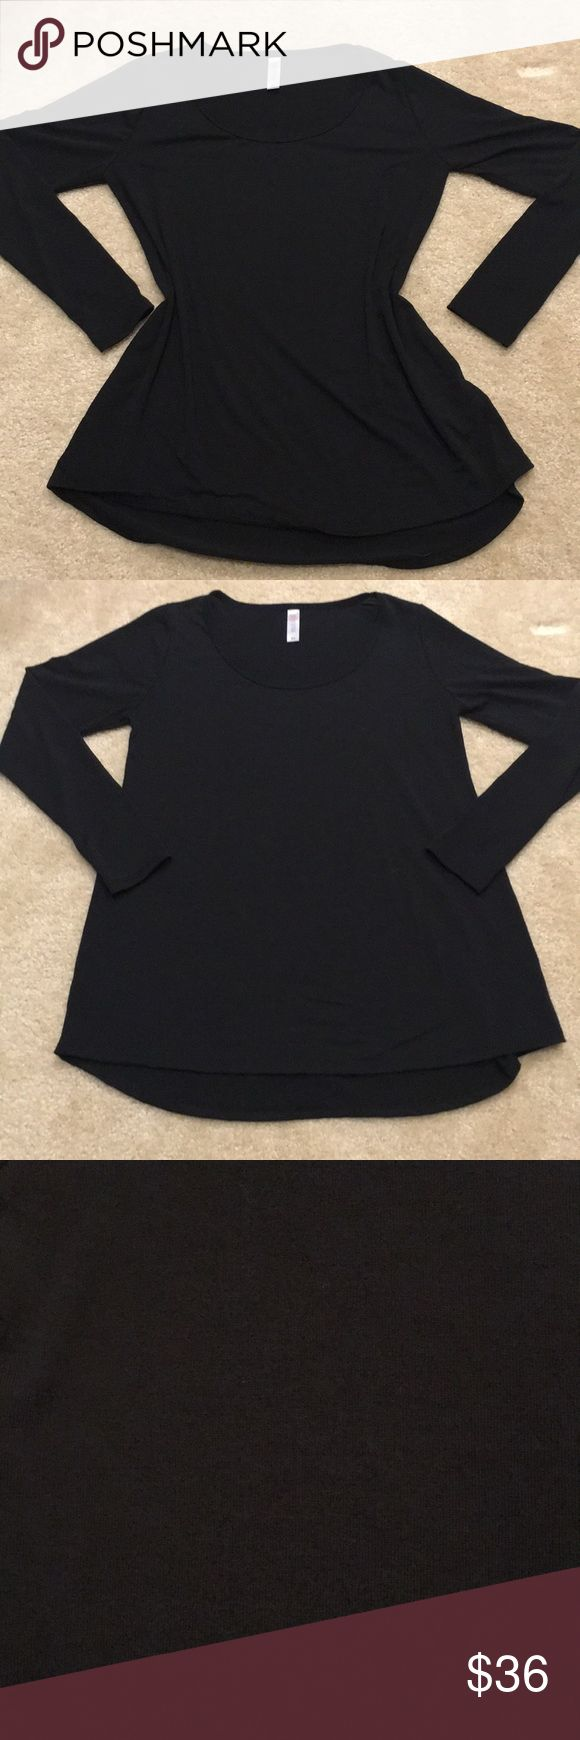 Like New! XS LulaRoe Noir Collection Lynnae Like New! XS LulaRoe Noir collection Lynnae. I've worn this ONE time (maybe a couple hours), but the shoulders are too tight for my liking. Immaculate condition! Smoke free home. Bundle more items and save. LuLaRoe Tops Tees - Long Sleeve